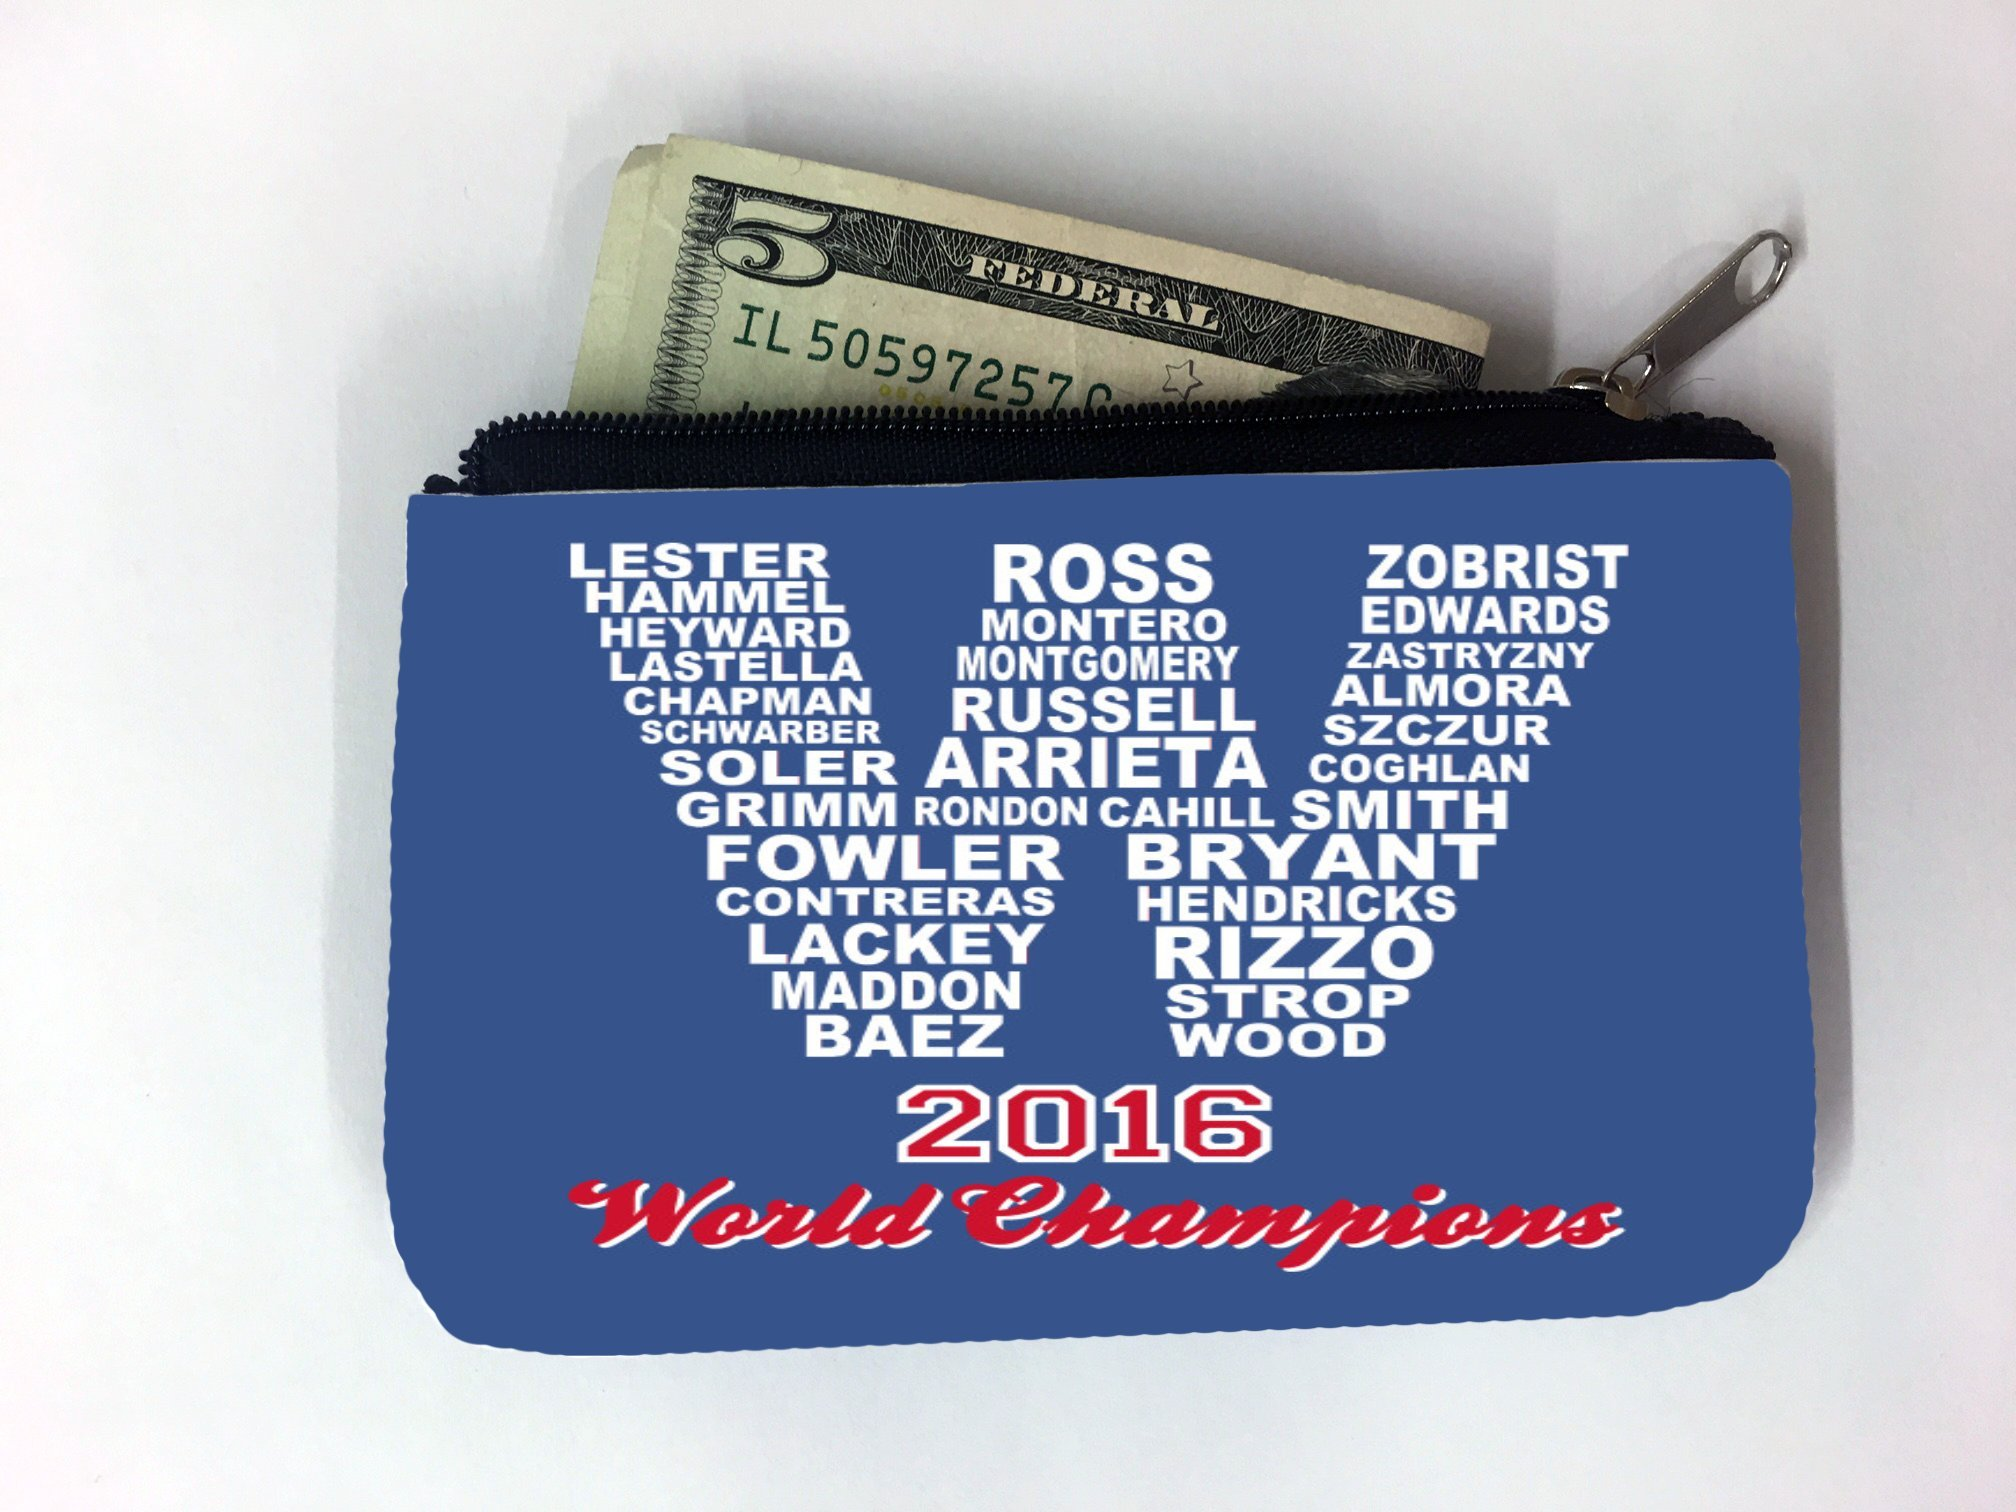 Cubs 2016 World Baseball Champs Coin Purse Change Holder by Debbie's Designs